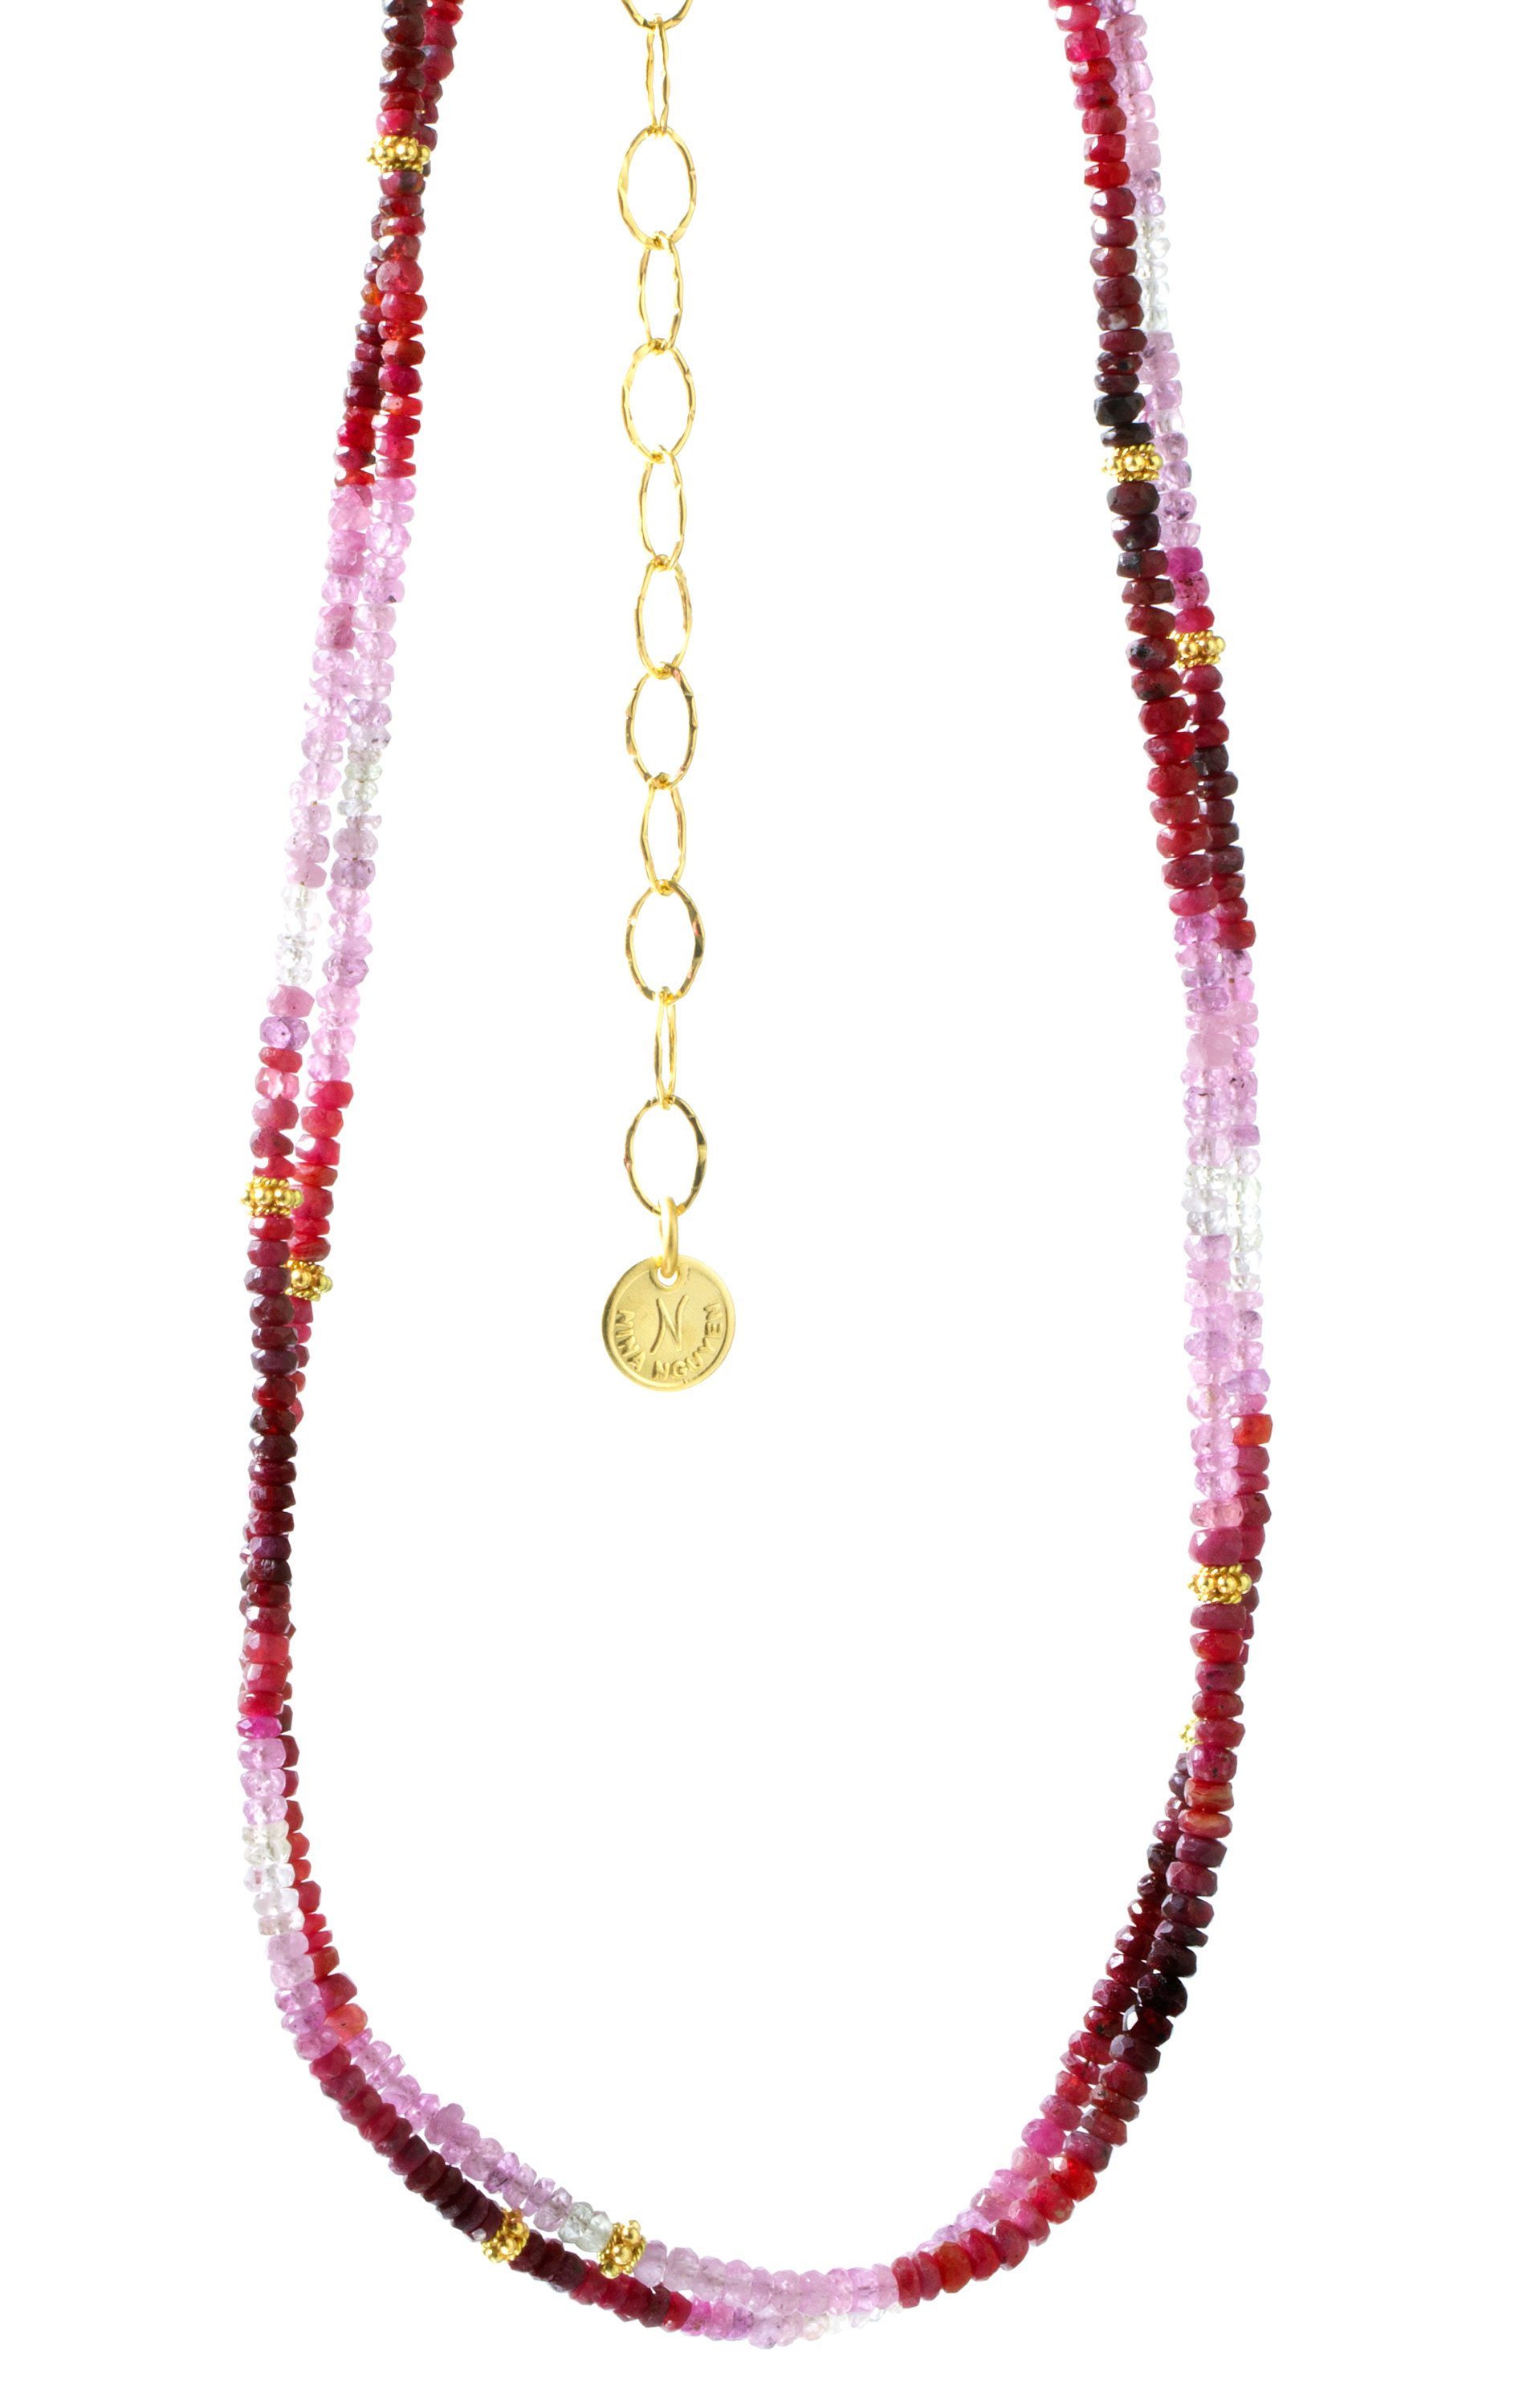 Nina Nguyen ruby bead Harmony necklace | JCK On Your Market